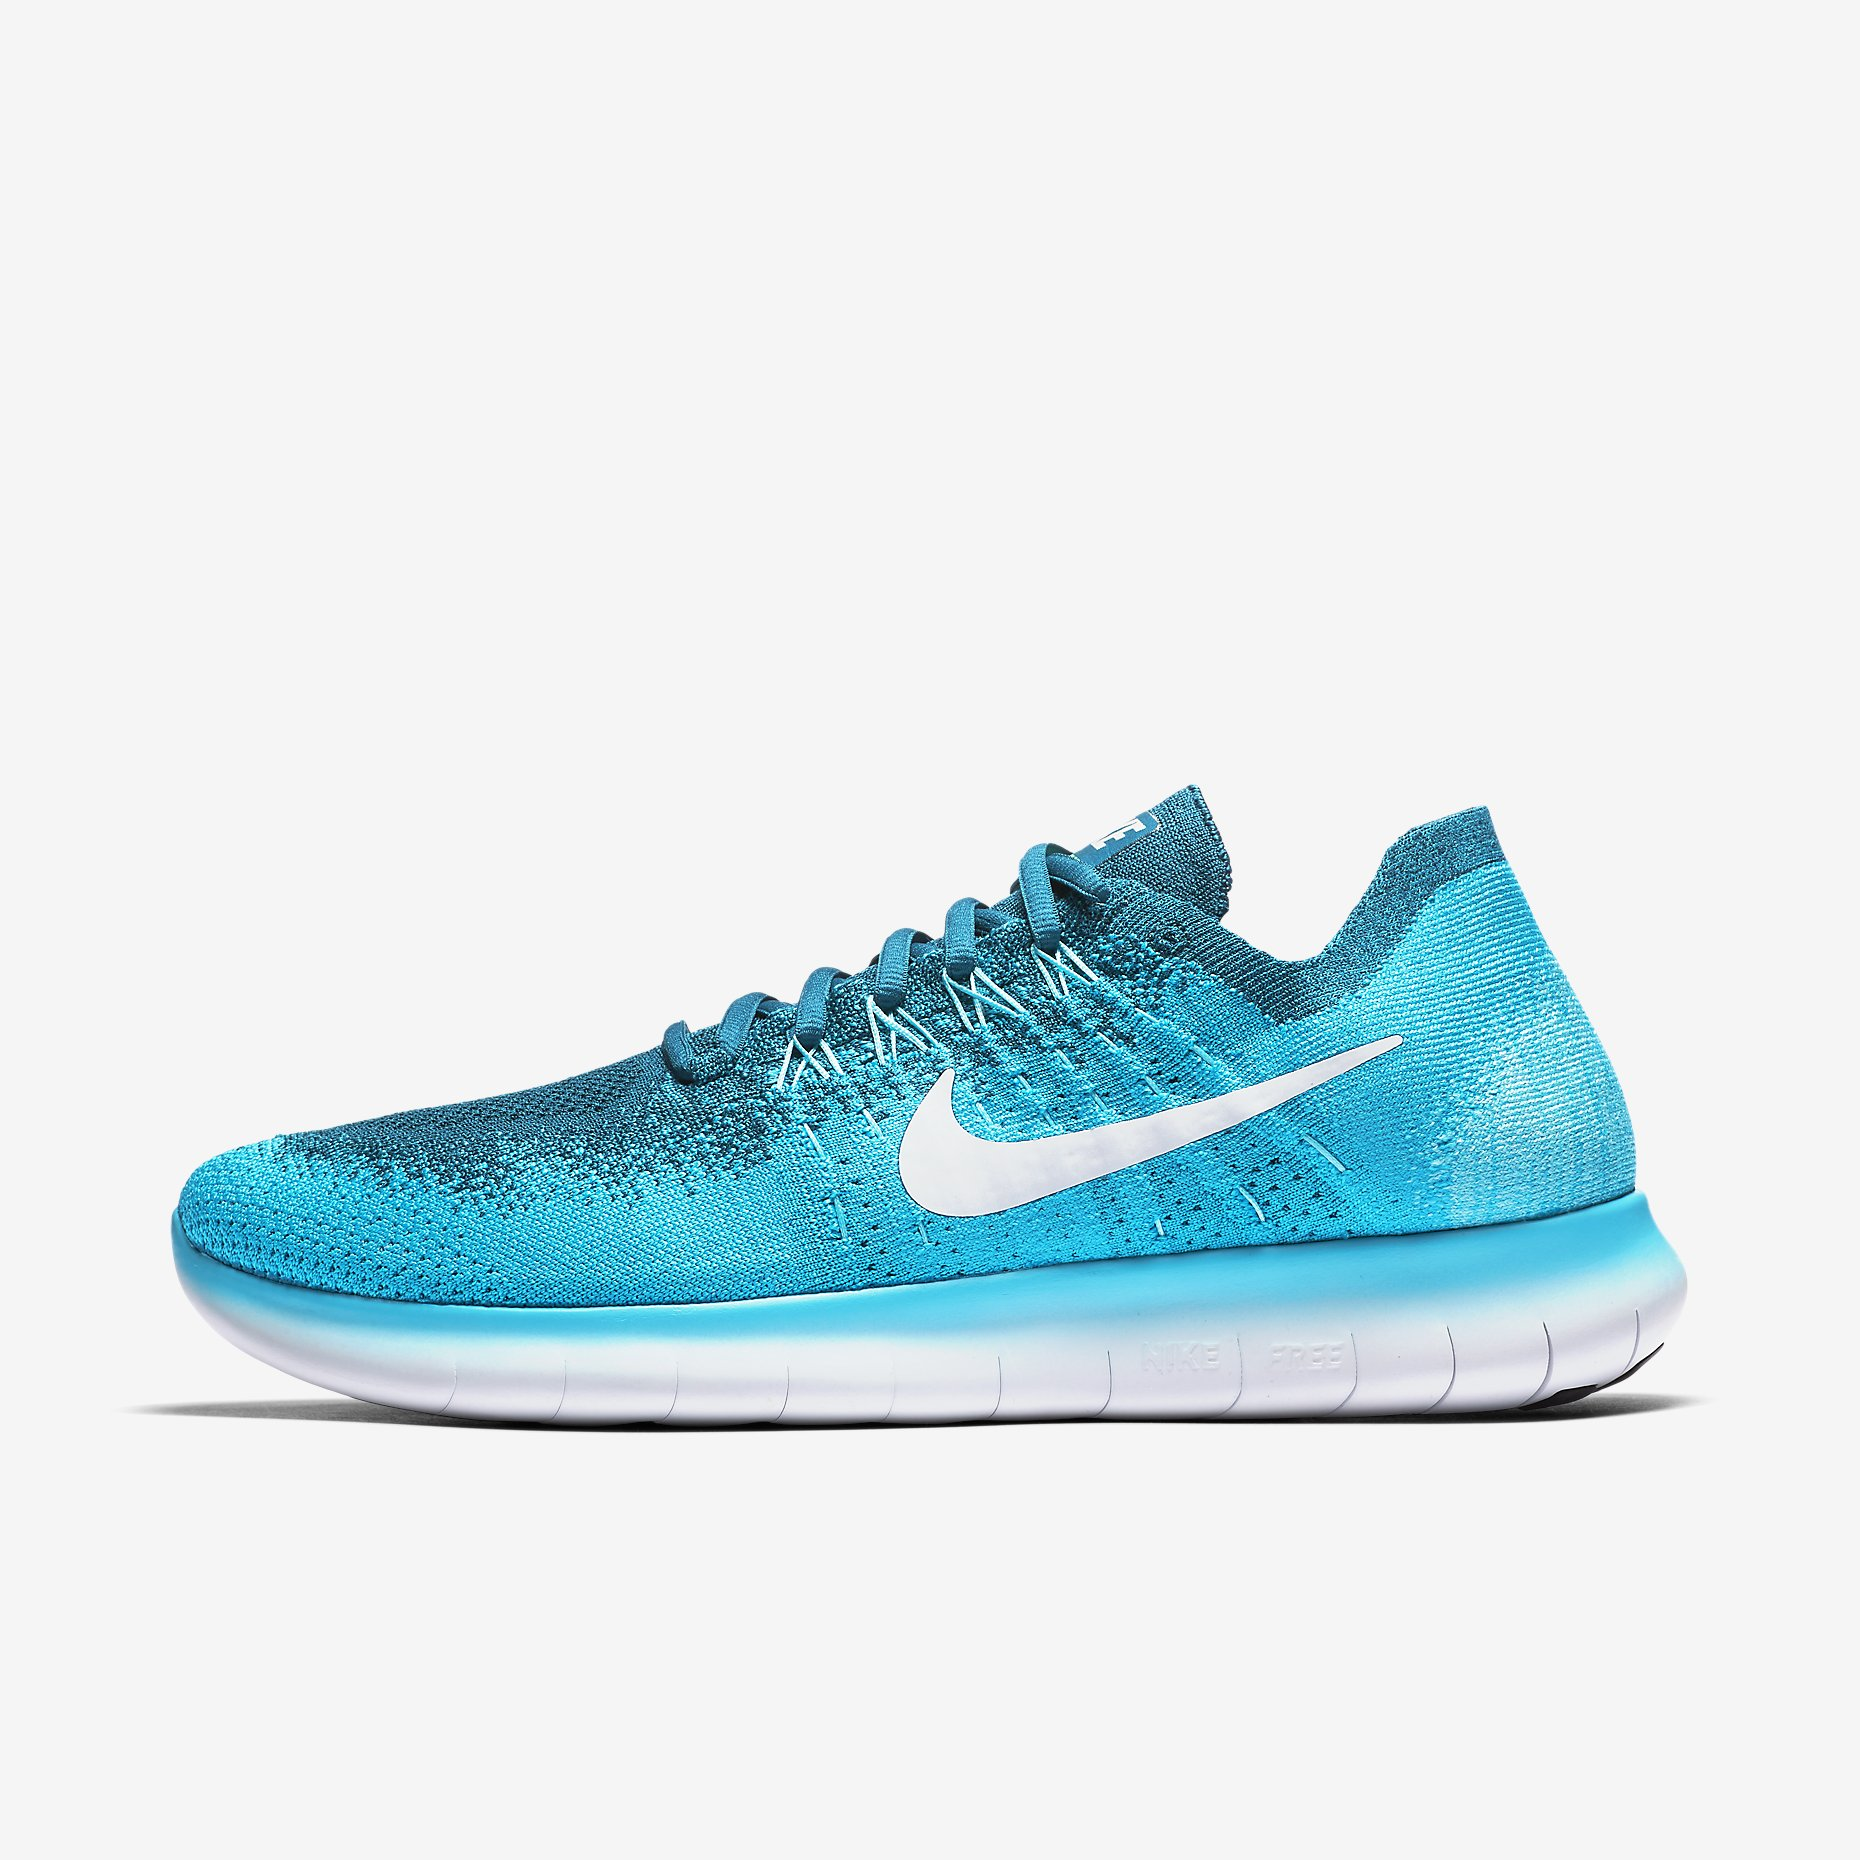 Nike Free RN Flyknit 2017 Men's Running Shoes